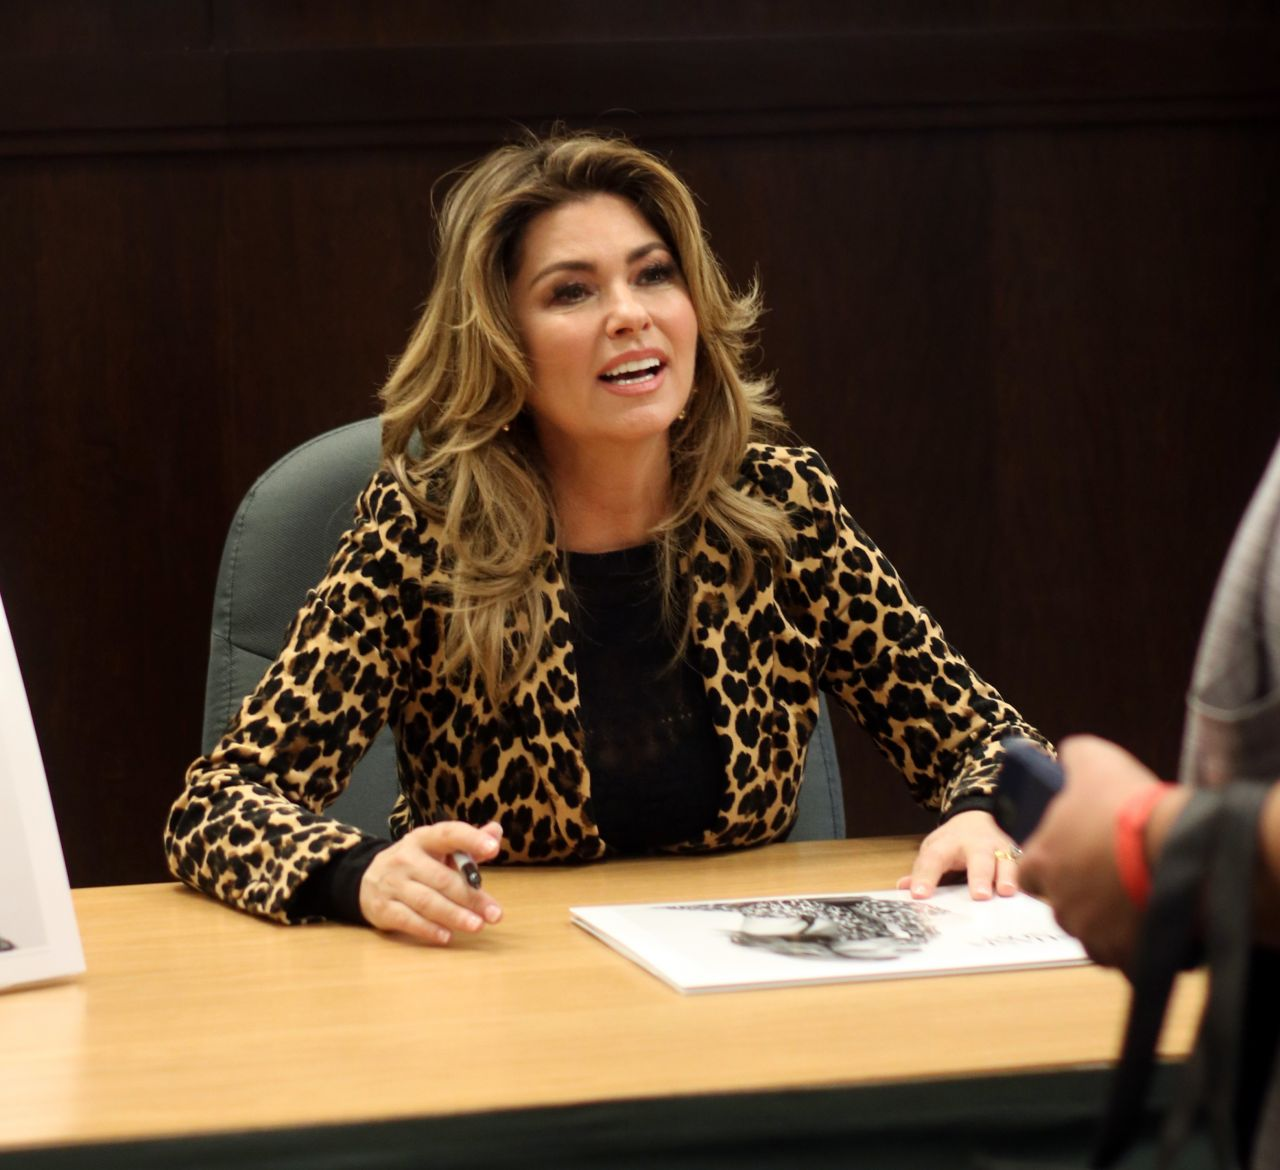 Shania Twain Album Signing For Now At Barnes Noble At The